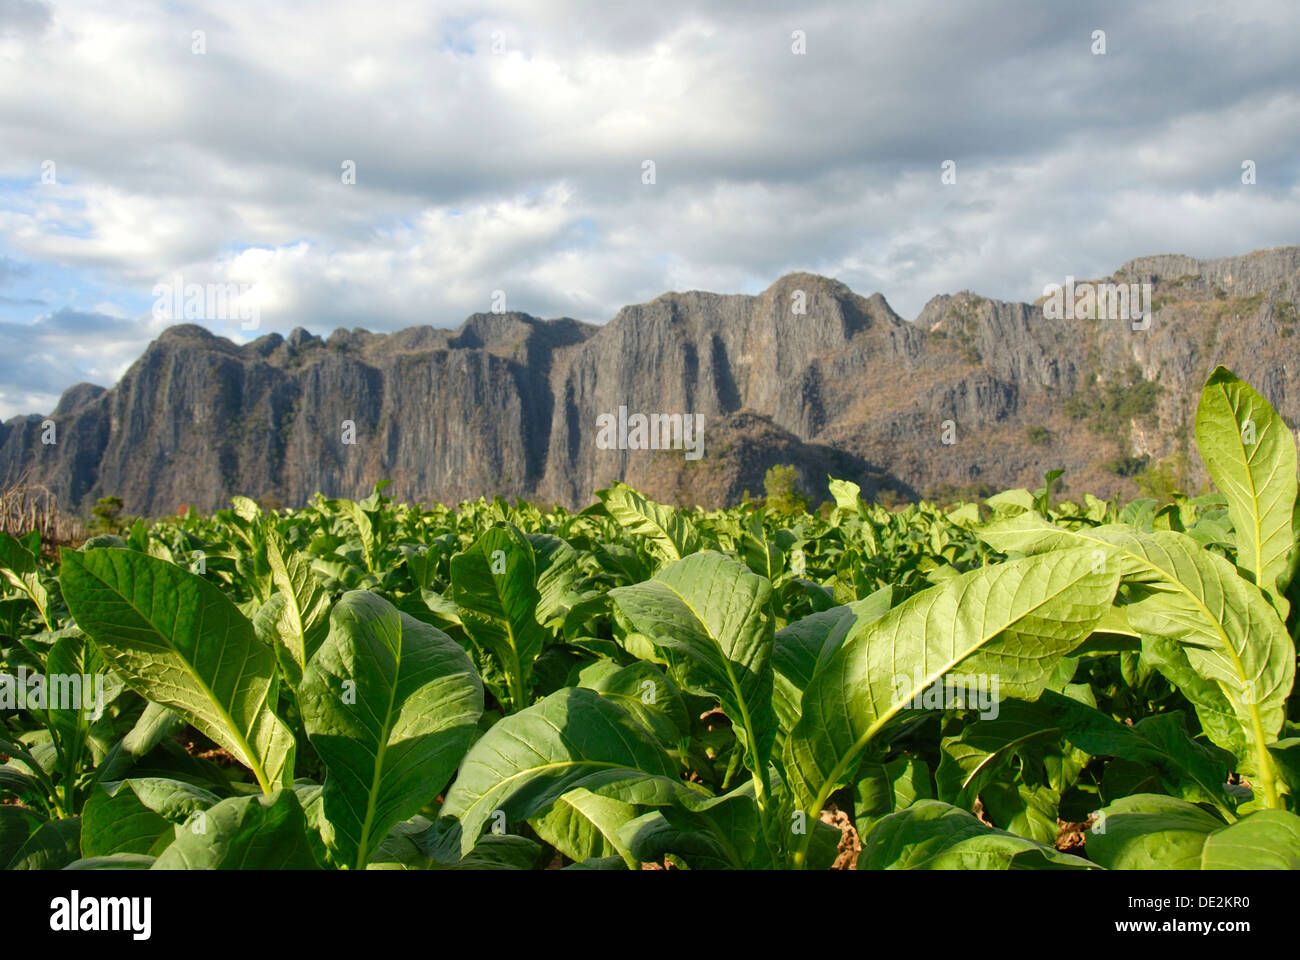 Agriculture, tobacco plants in the field, at Thakhek, Khammuan province, Khammouane, Laos, Southeast Asia, Asia - Stock Image